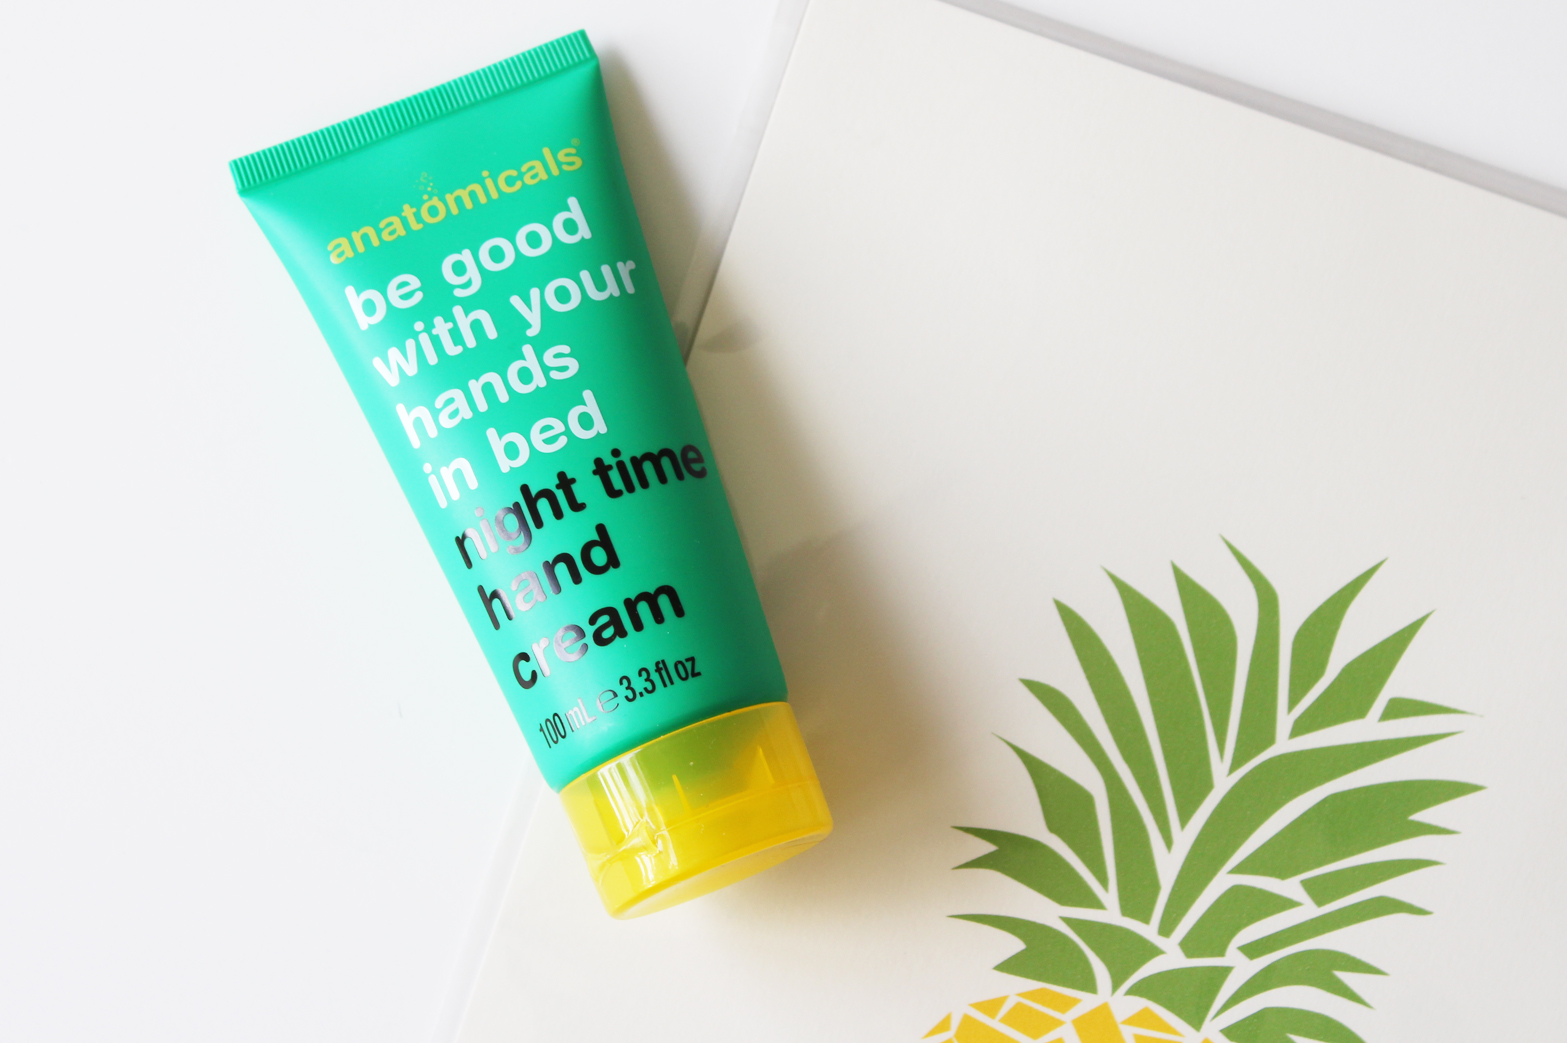 ANATOMICALS | Be Good With Your Hands in Bed Night Time Hand Cream Review - CassandraMyee